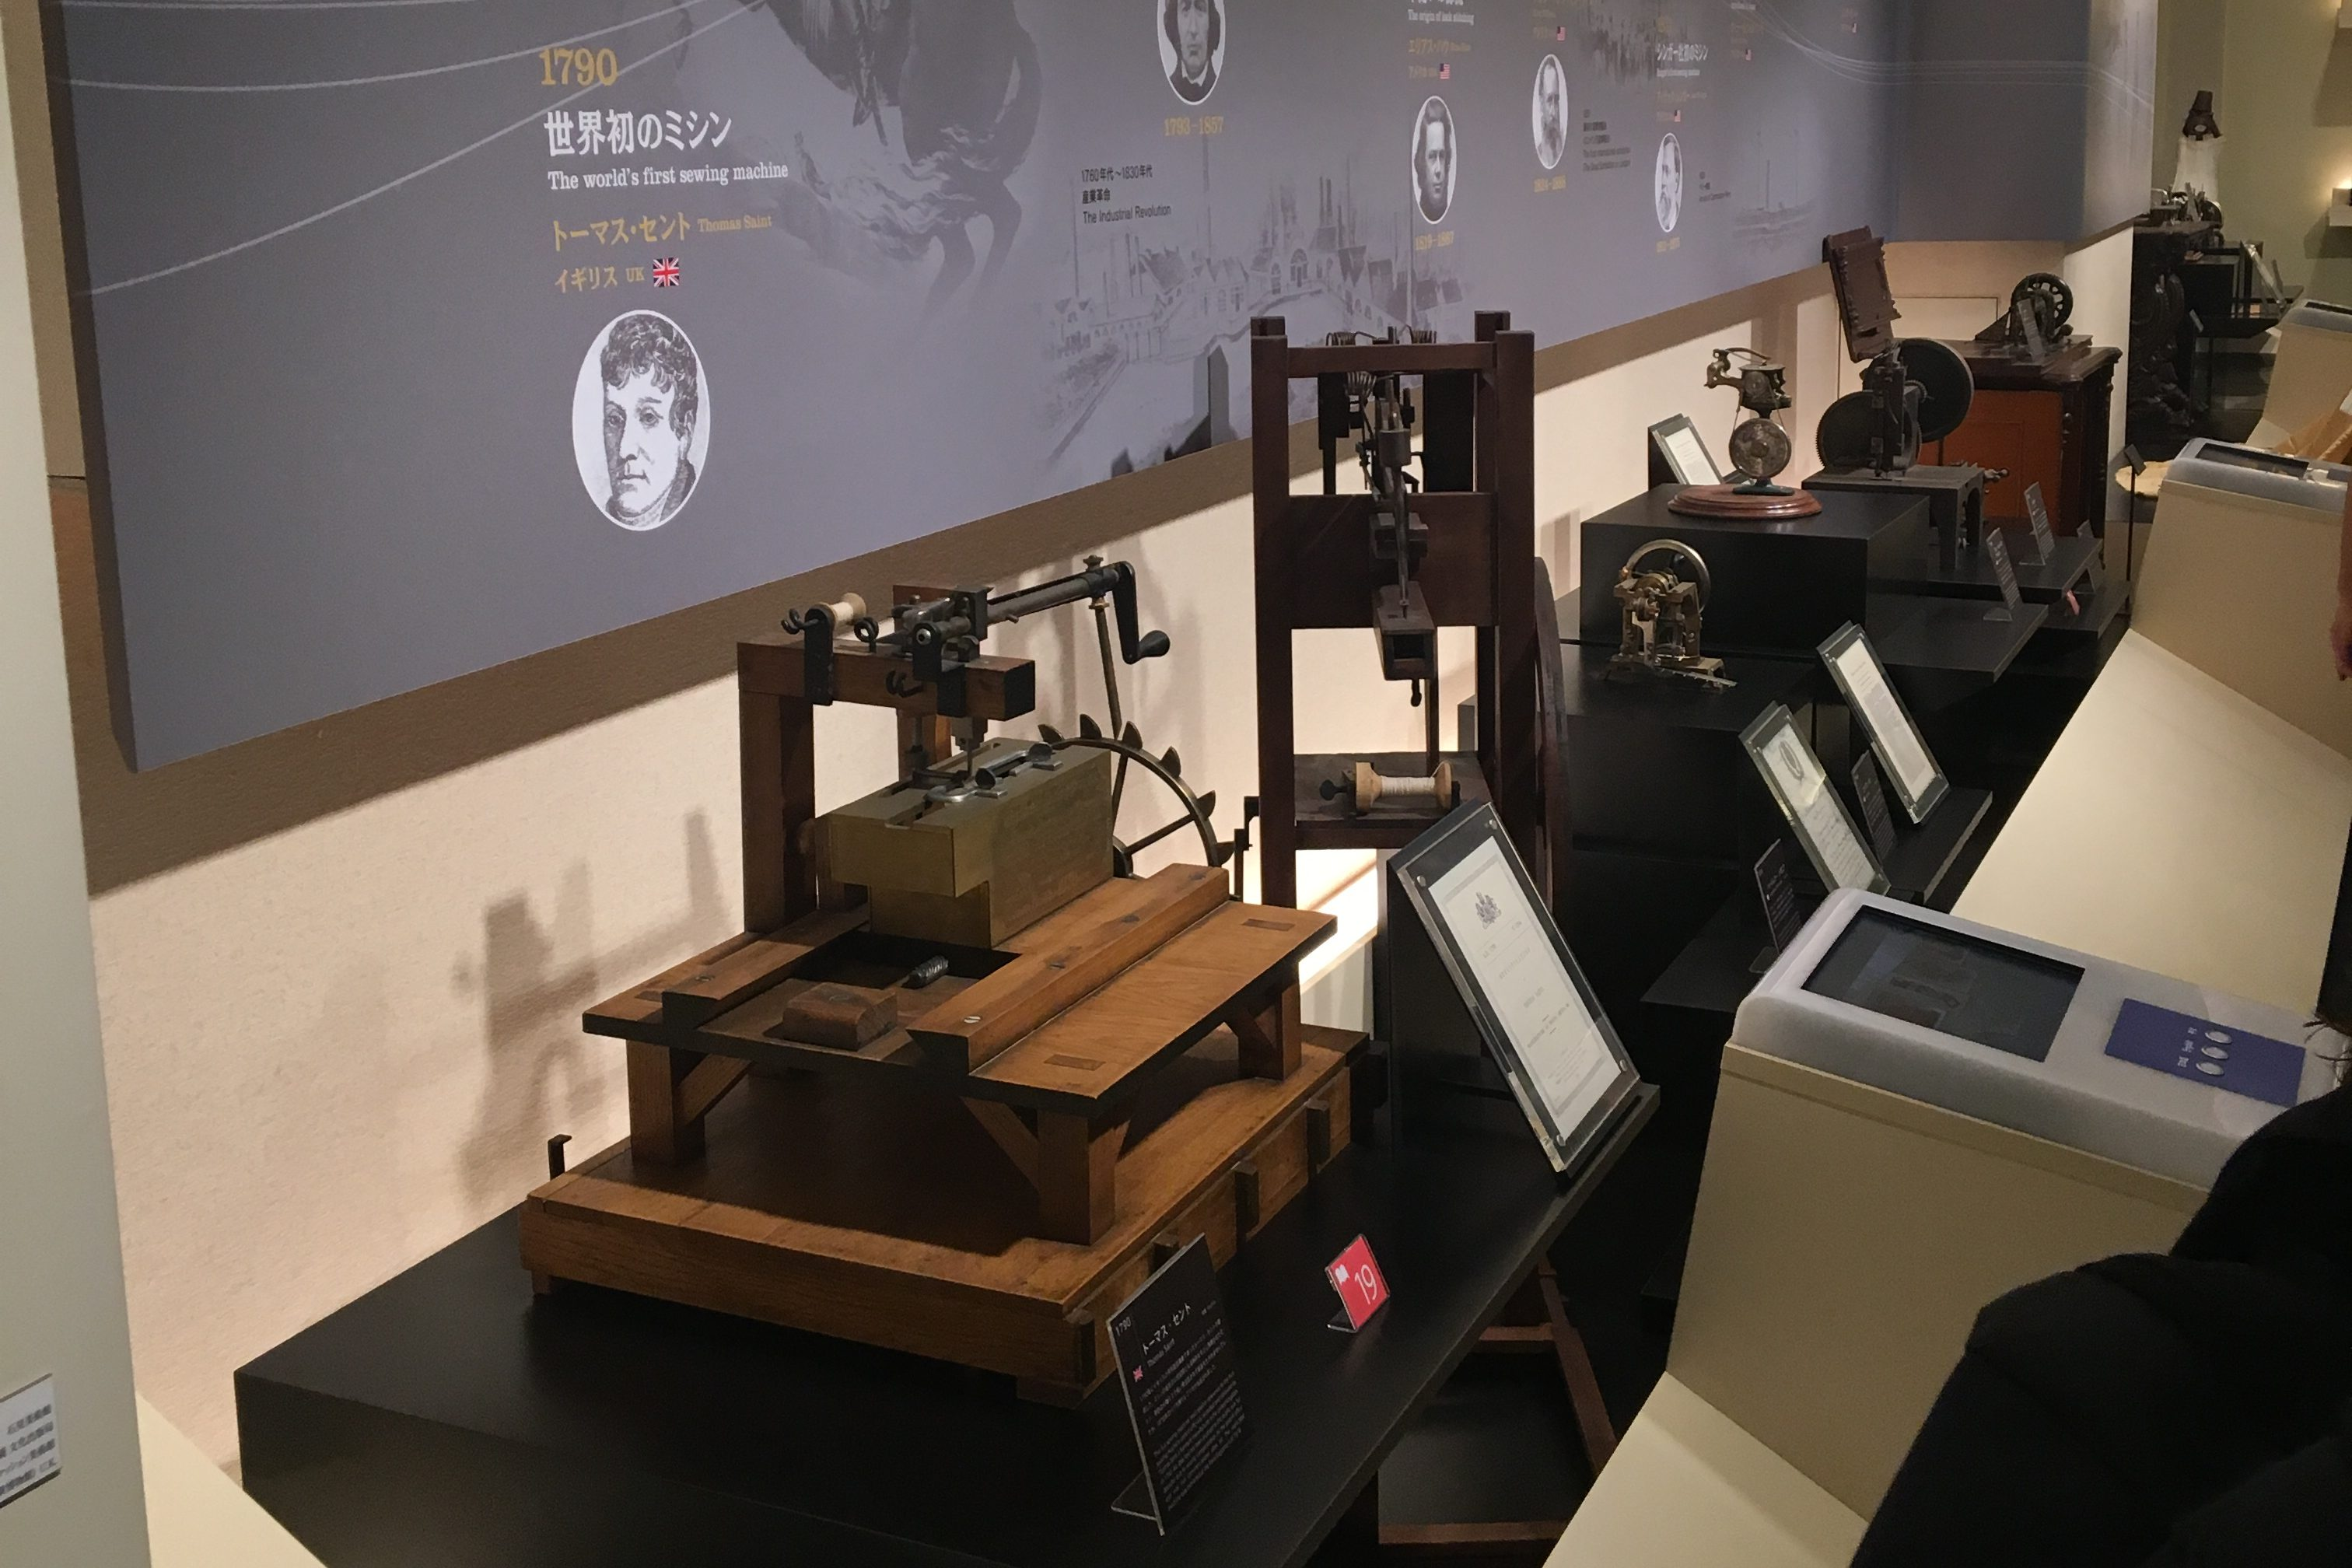 Picture of the exhibits of earliest sewing machines